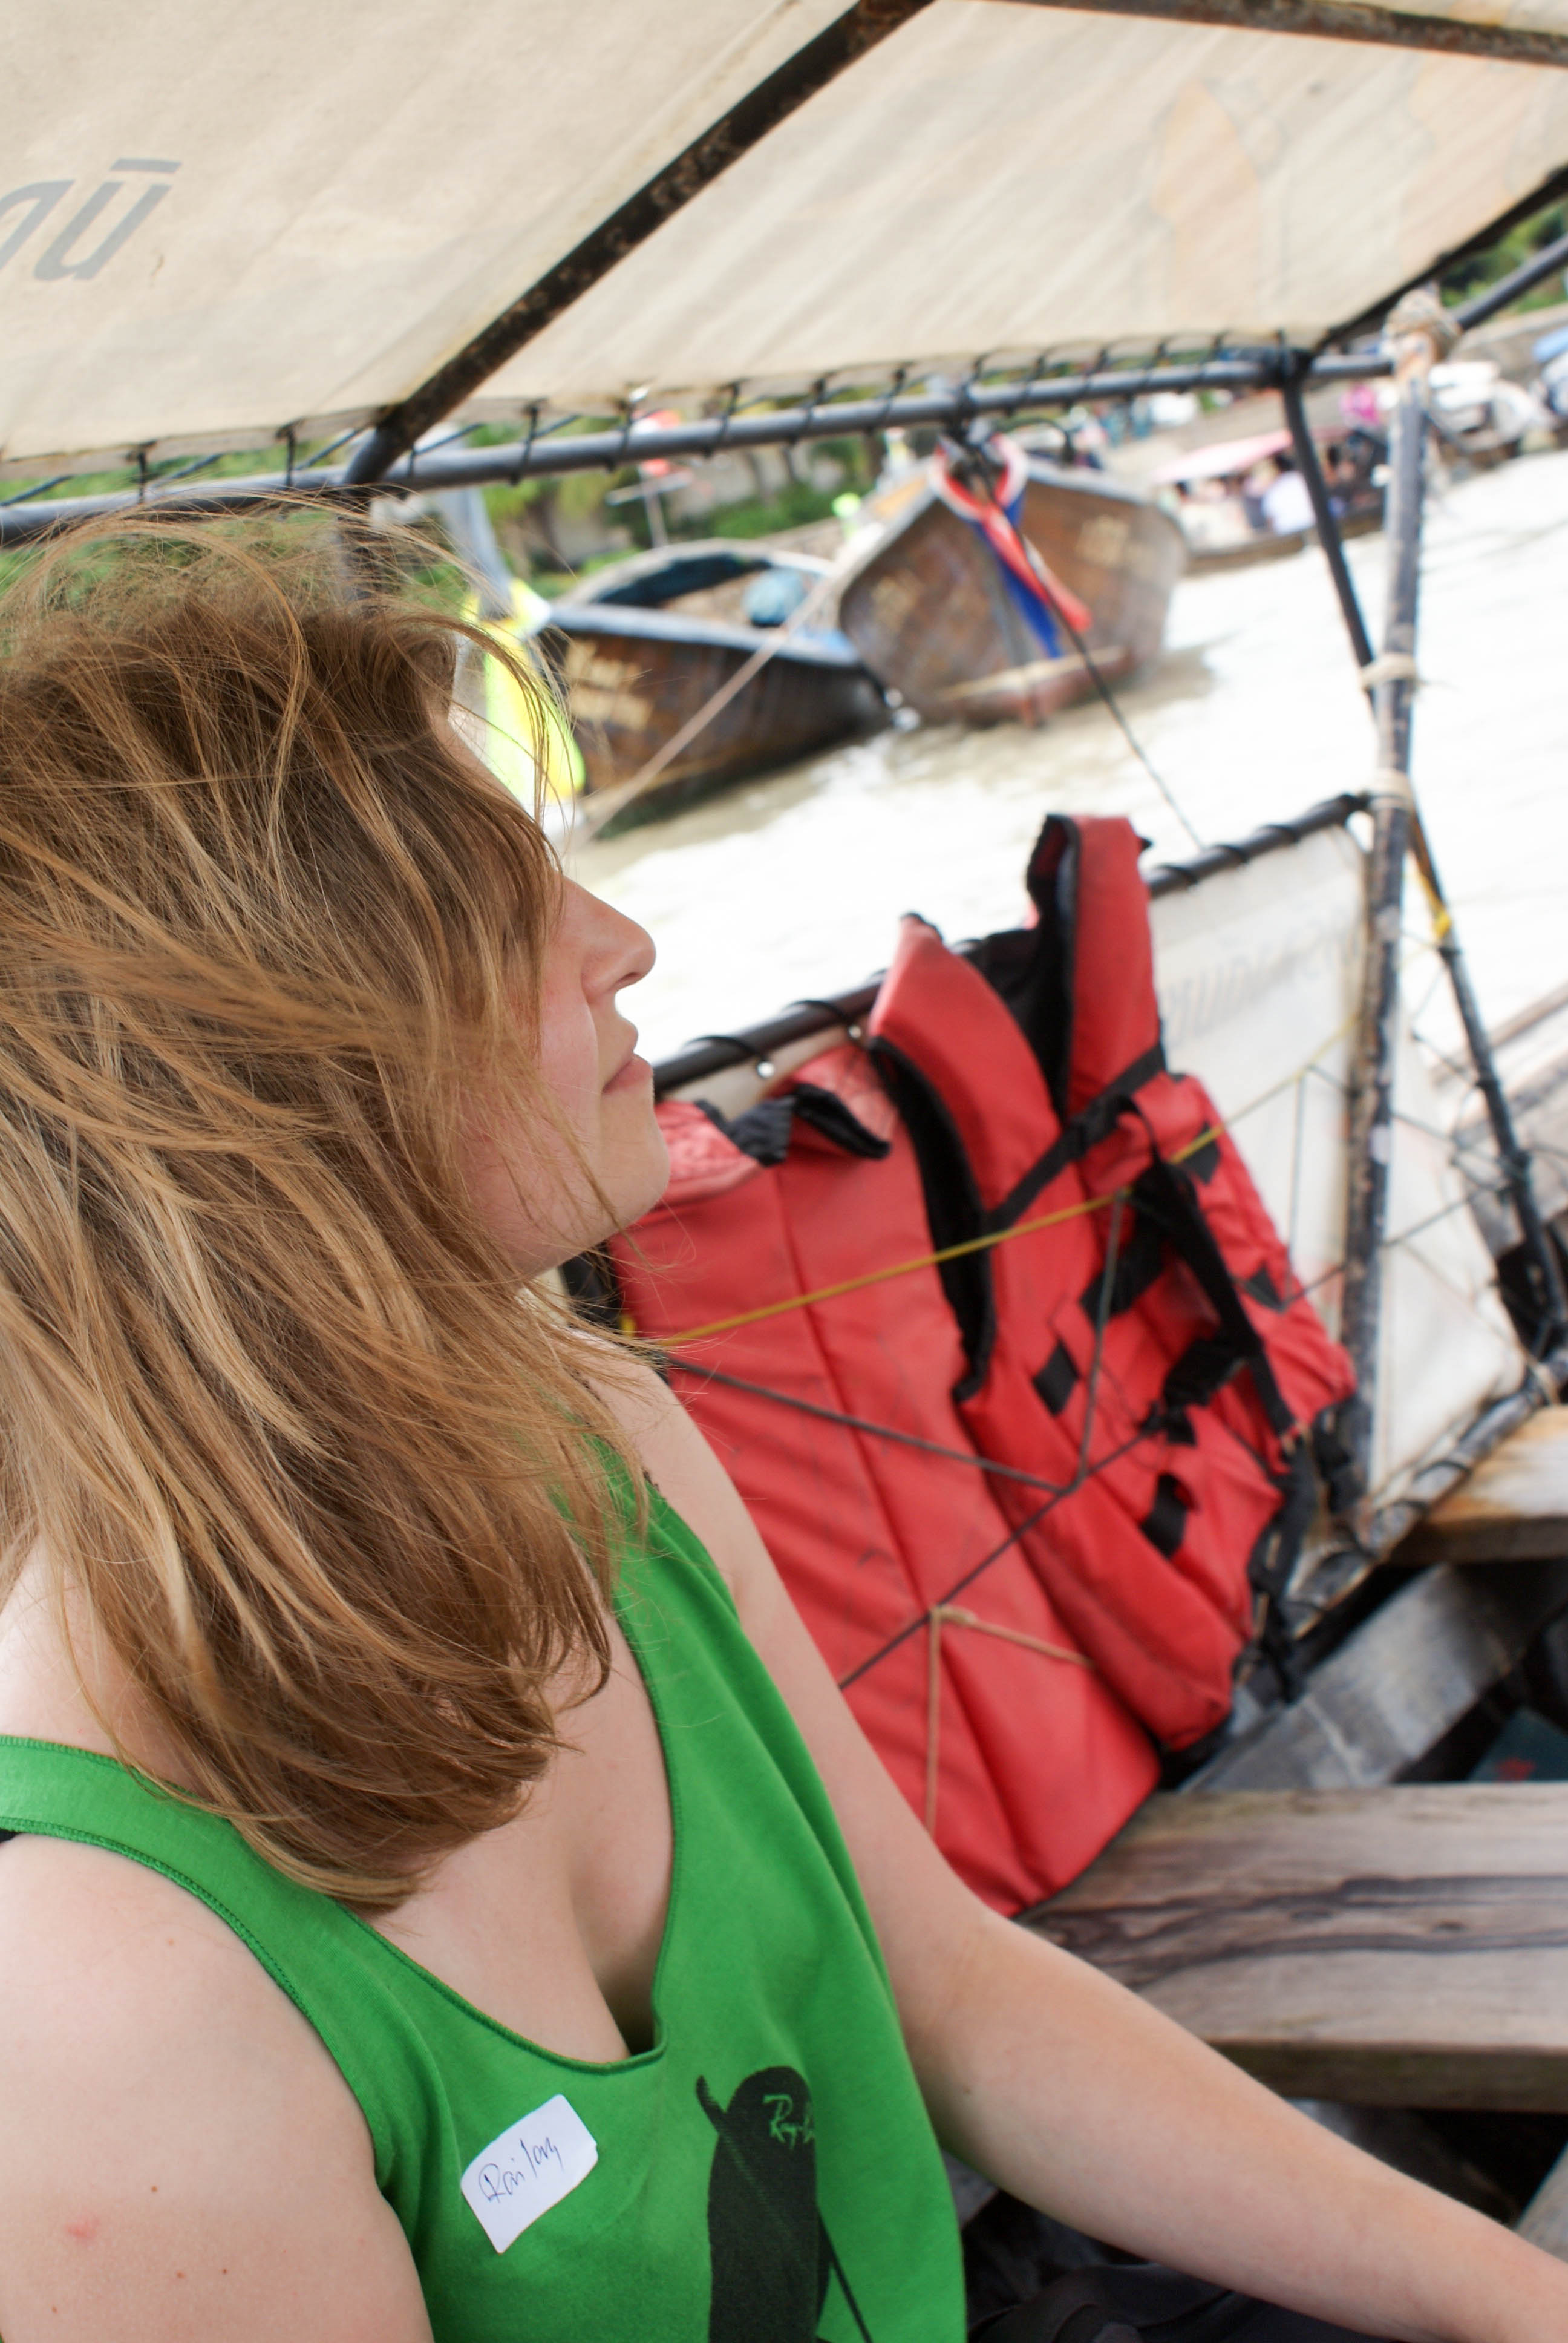 Postcards from Thailand: Railay, Krabi Photo Journal - On the way to Railay